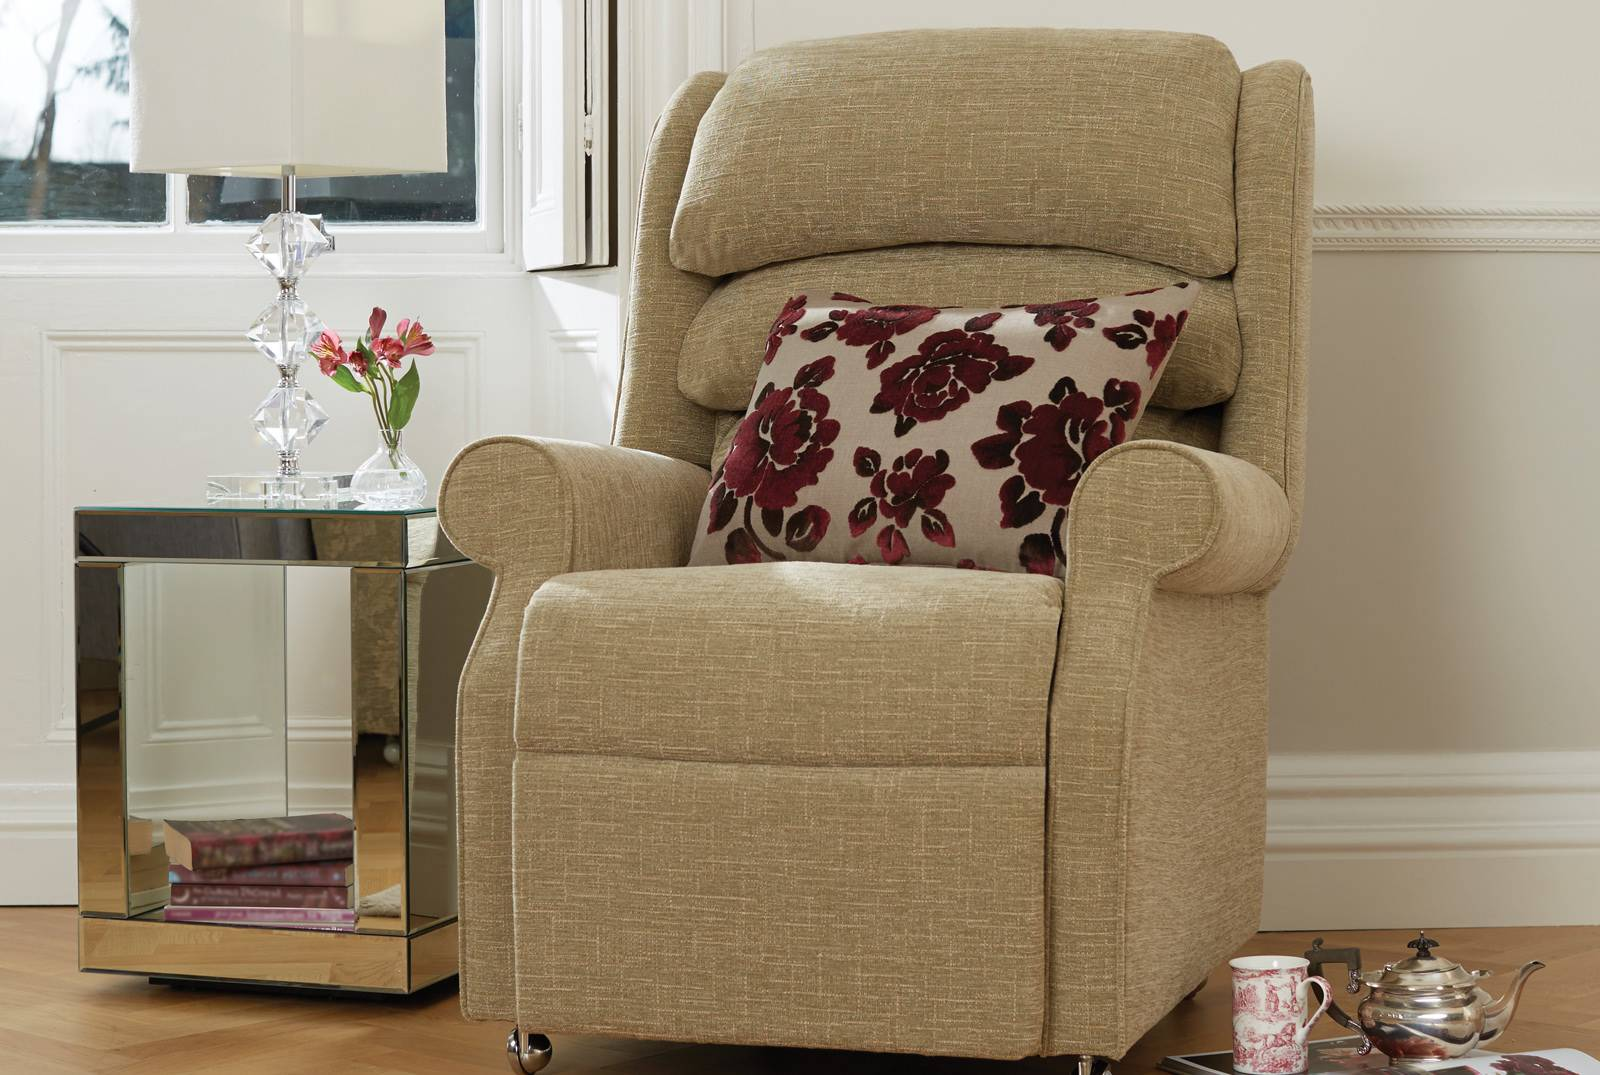 Waltham Comfort Chair in Elba Plain Celadon